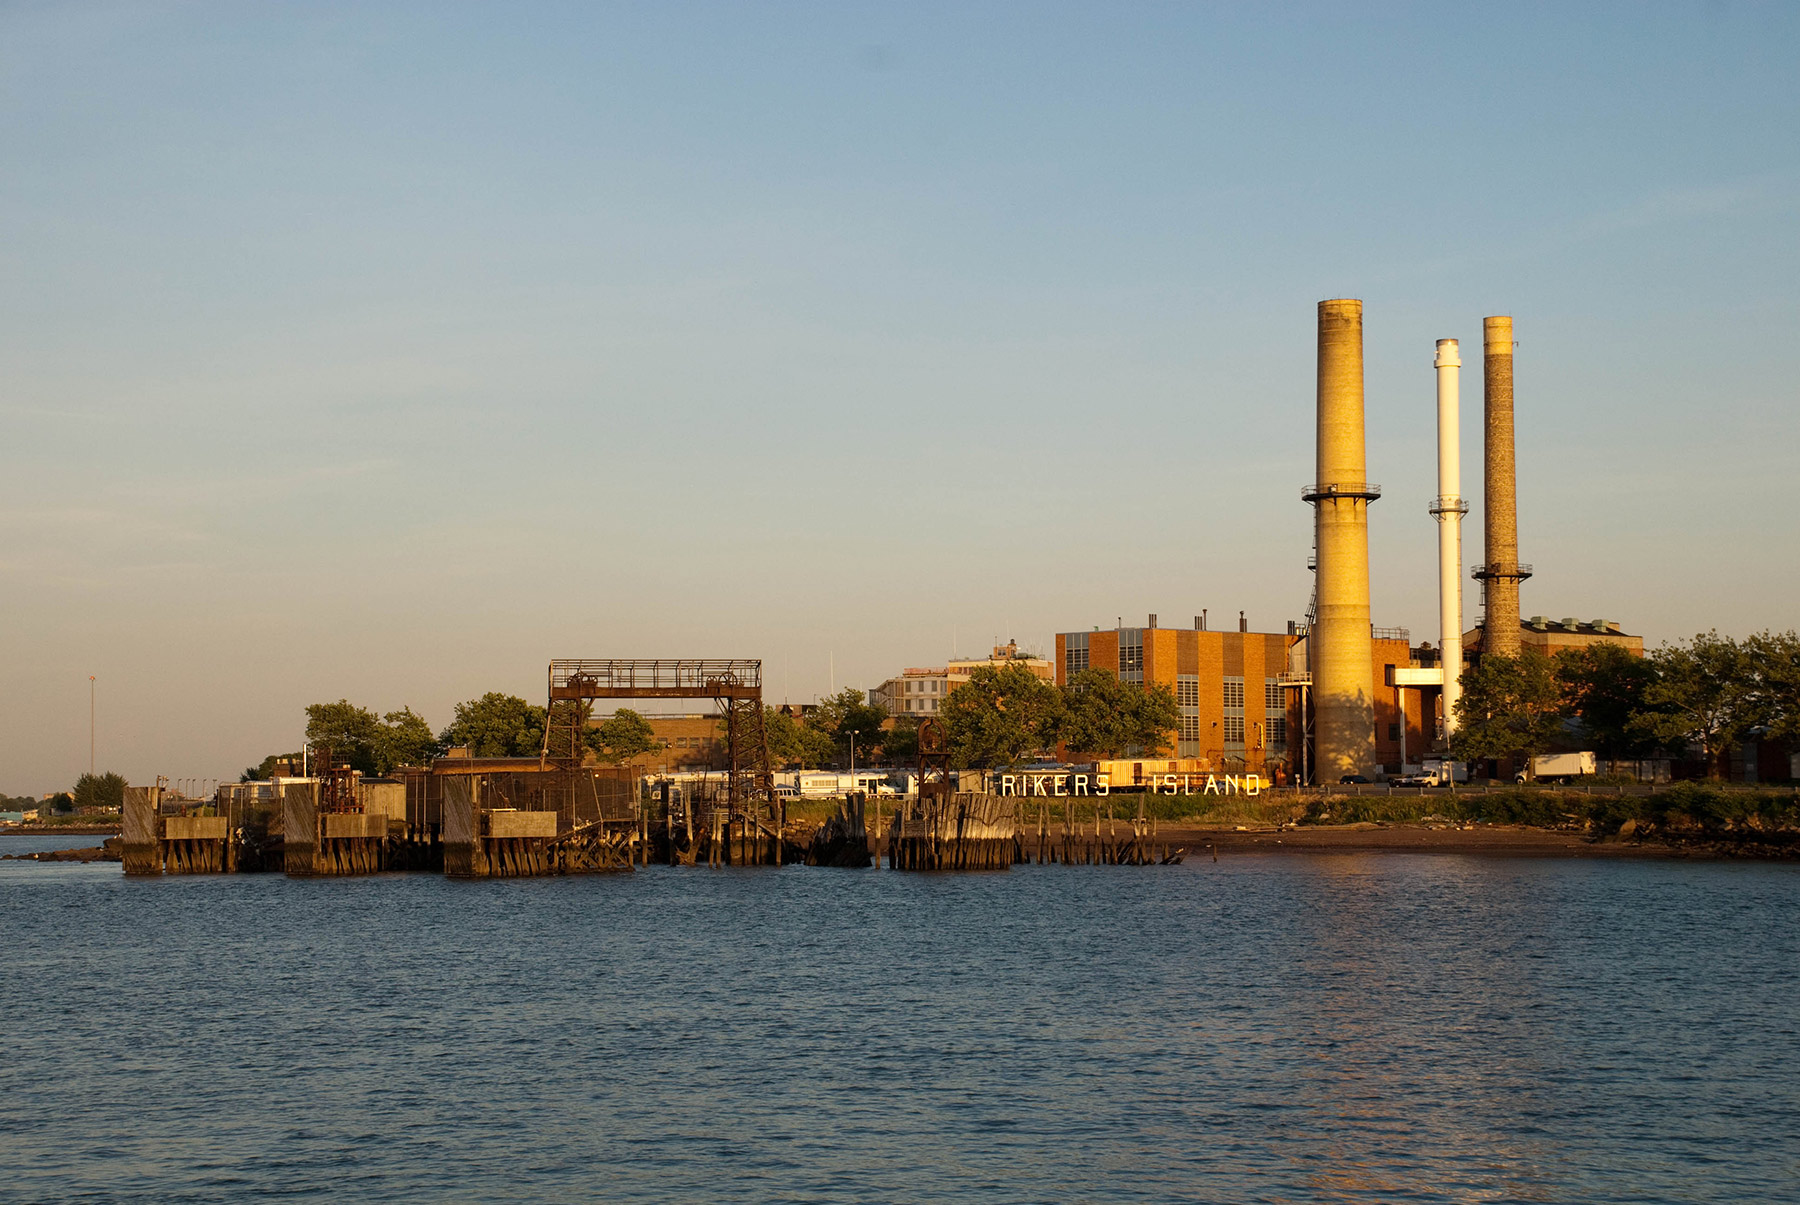 The power plant on Rikers Island